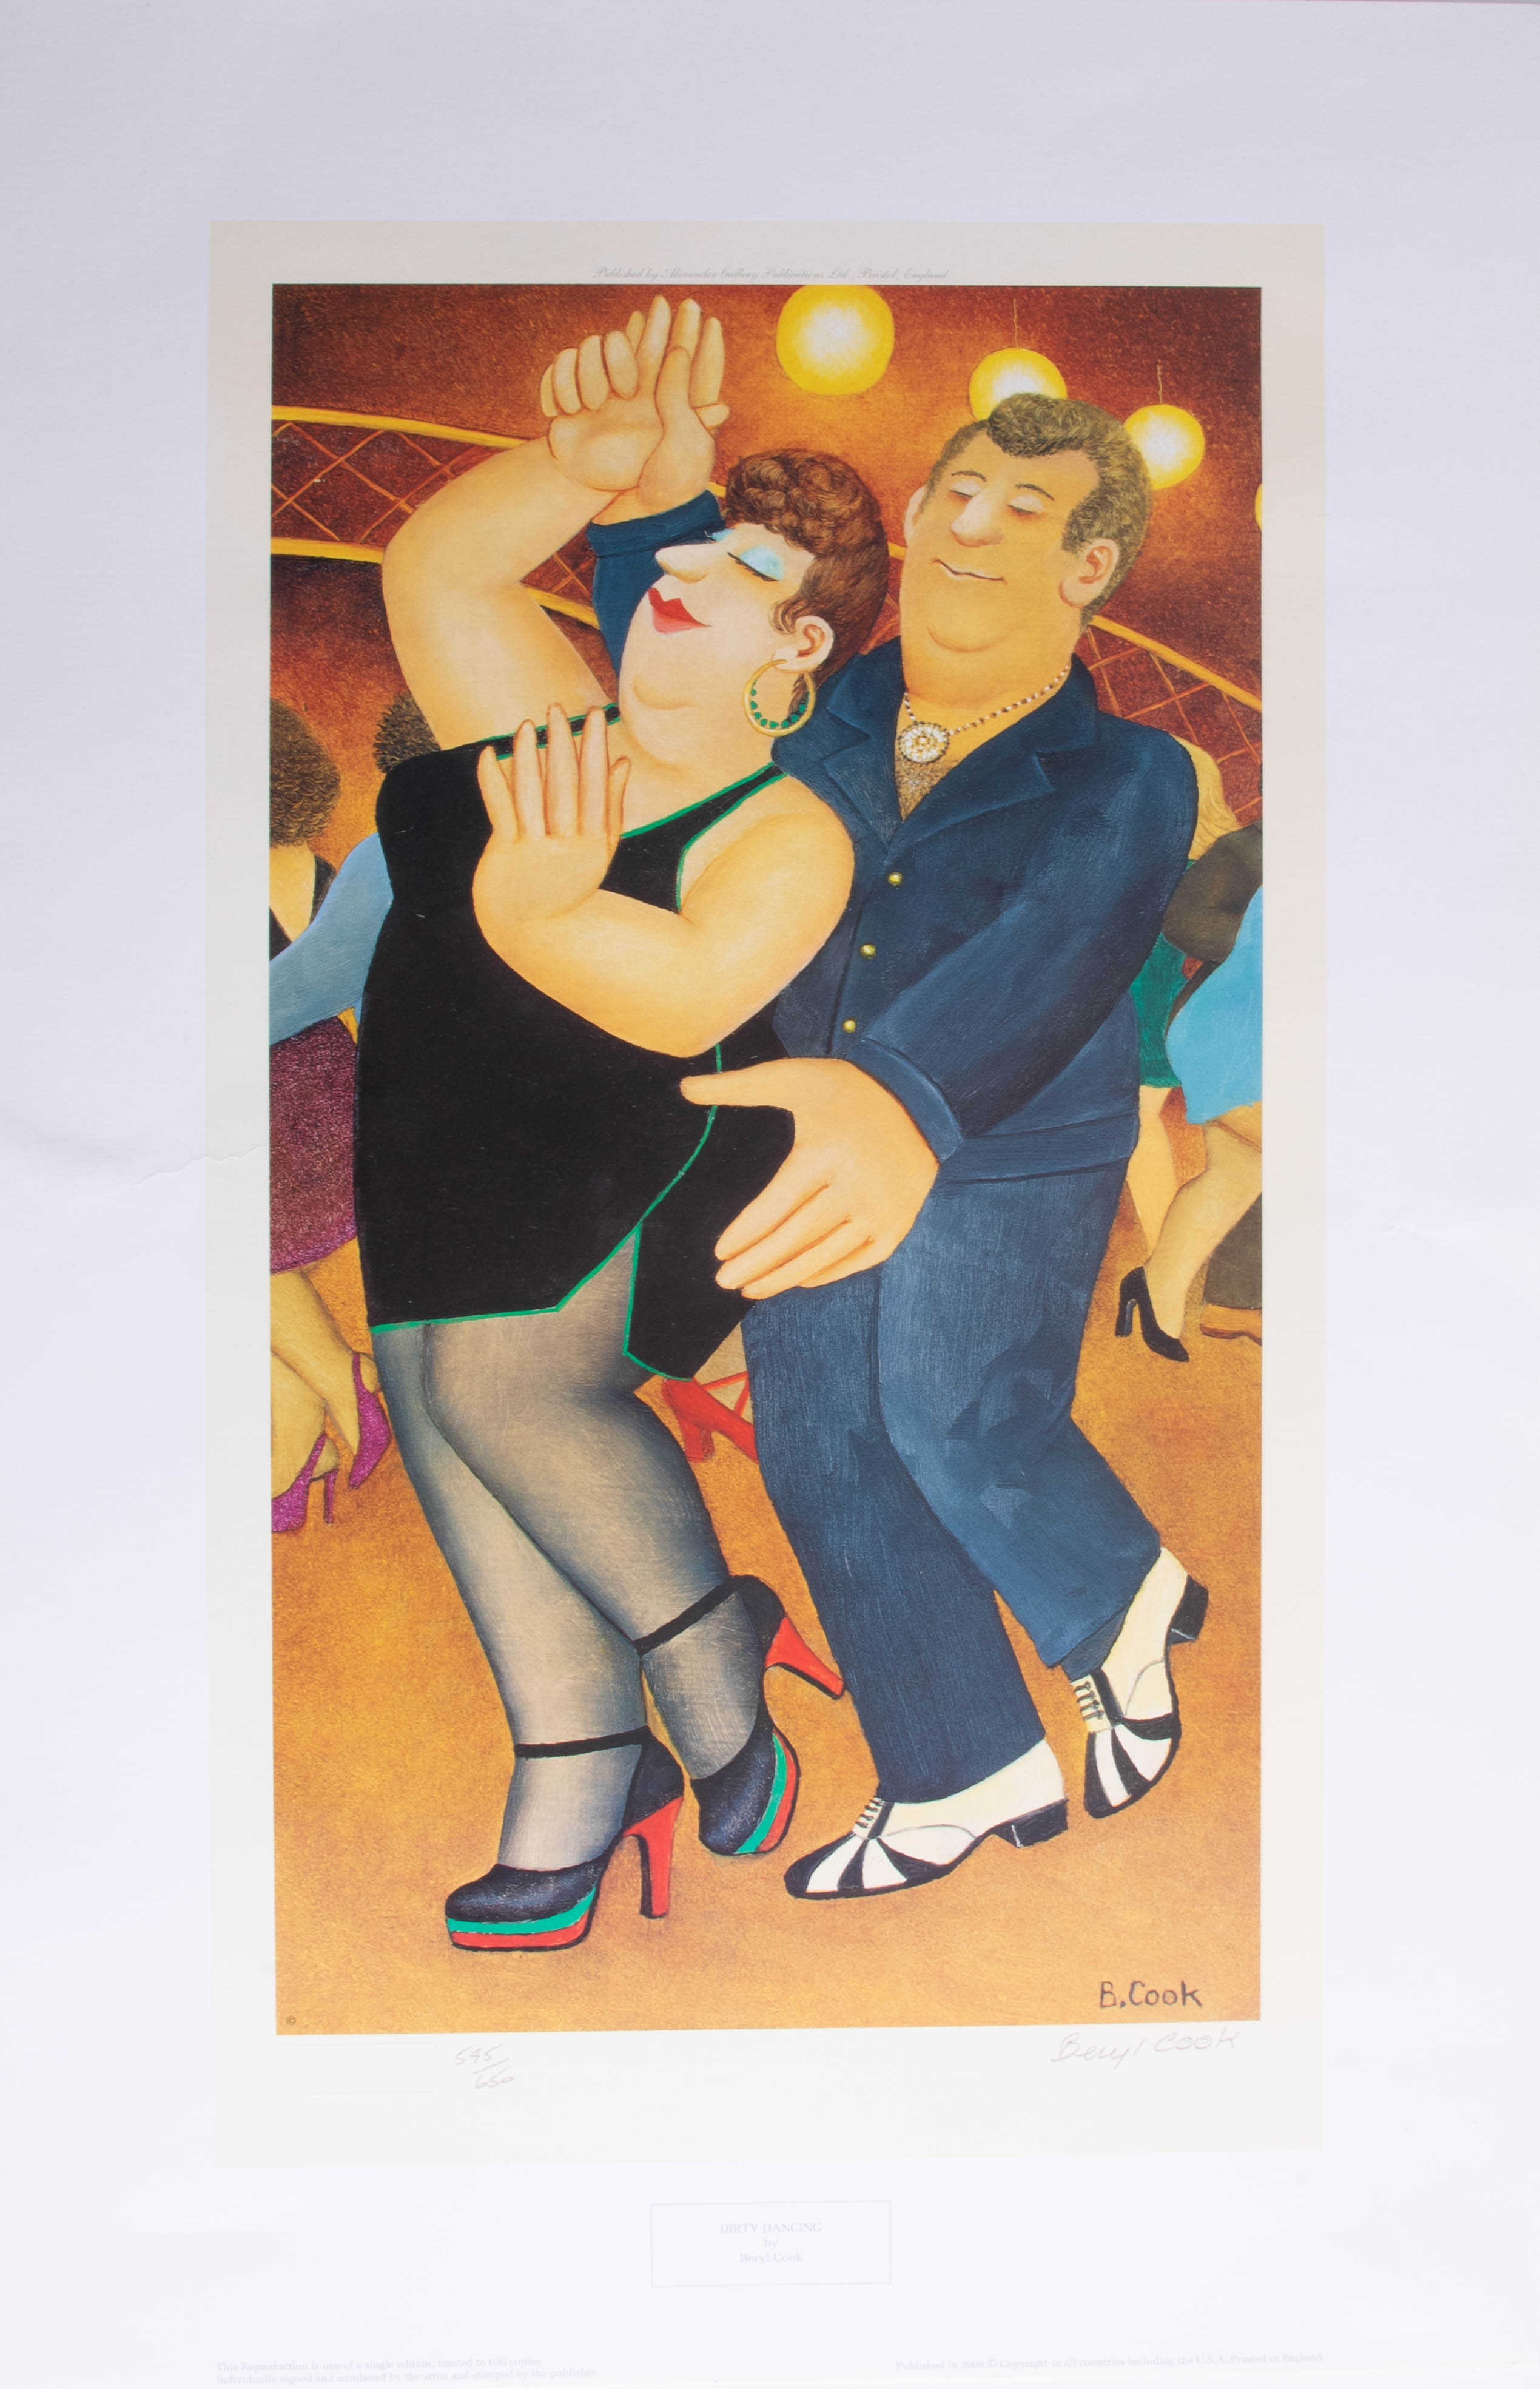 Lot 026 - Beryl Cook (1926-2008), 'Dirty Dancing' signed limited edition print, No 595/650, published by